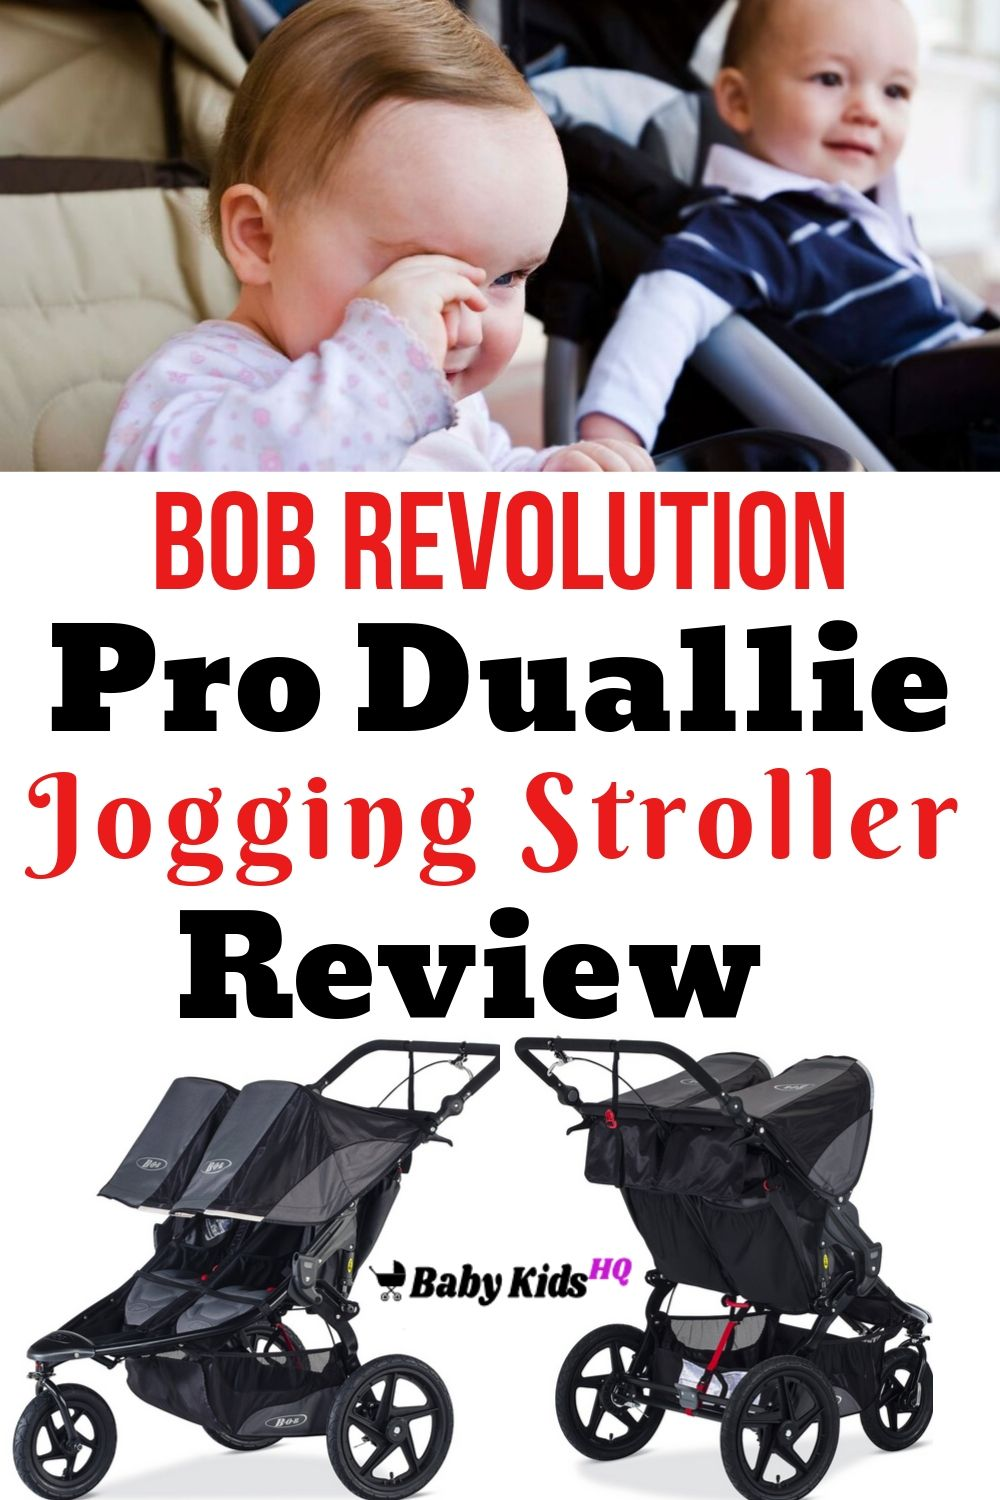 If you are looking for a state-of-the-art stroller which allows you to move around easily with two kids at a time, the BOB Revolution Pro Duallie Jogging Stroller has been designed especially for you.